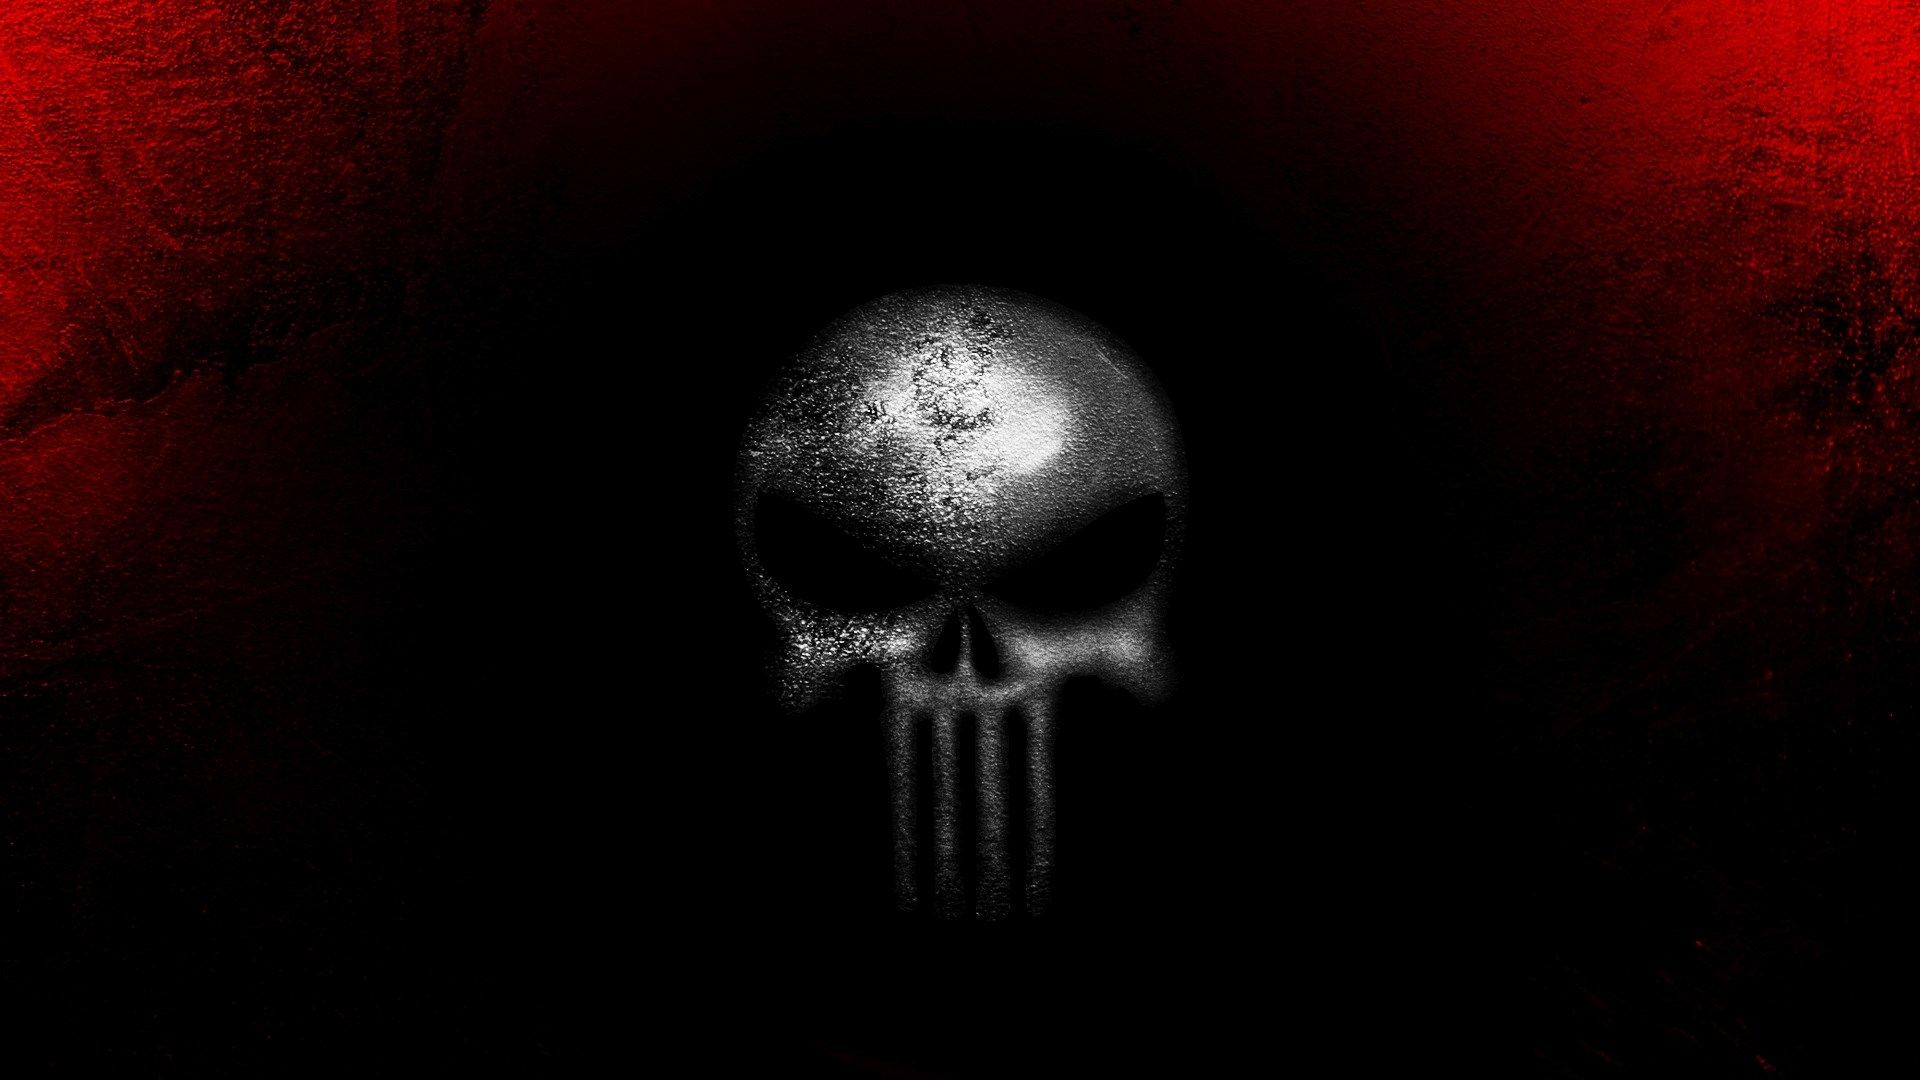 Desktop Background Punisher Wallpaper